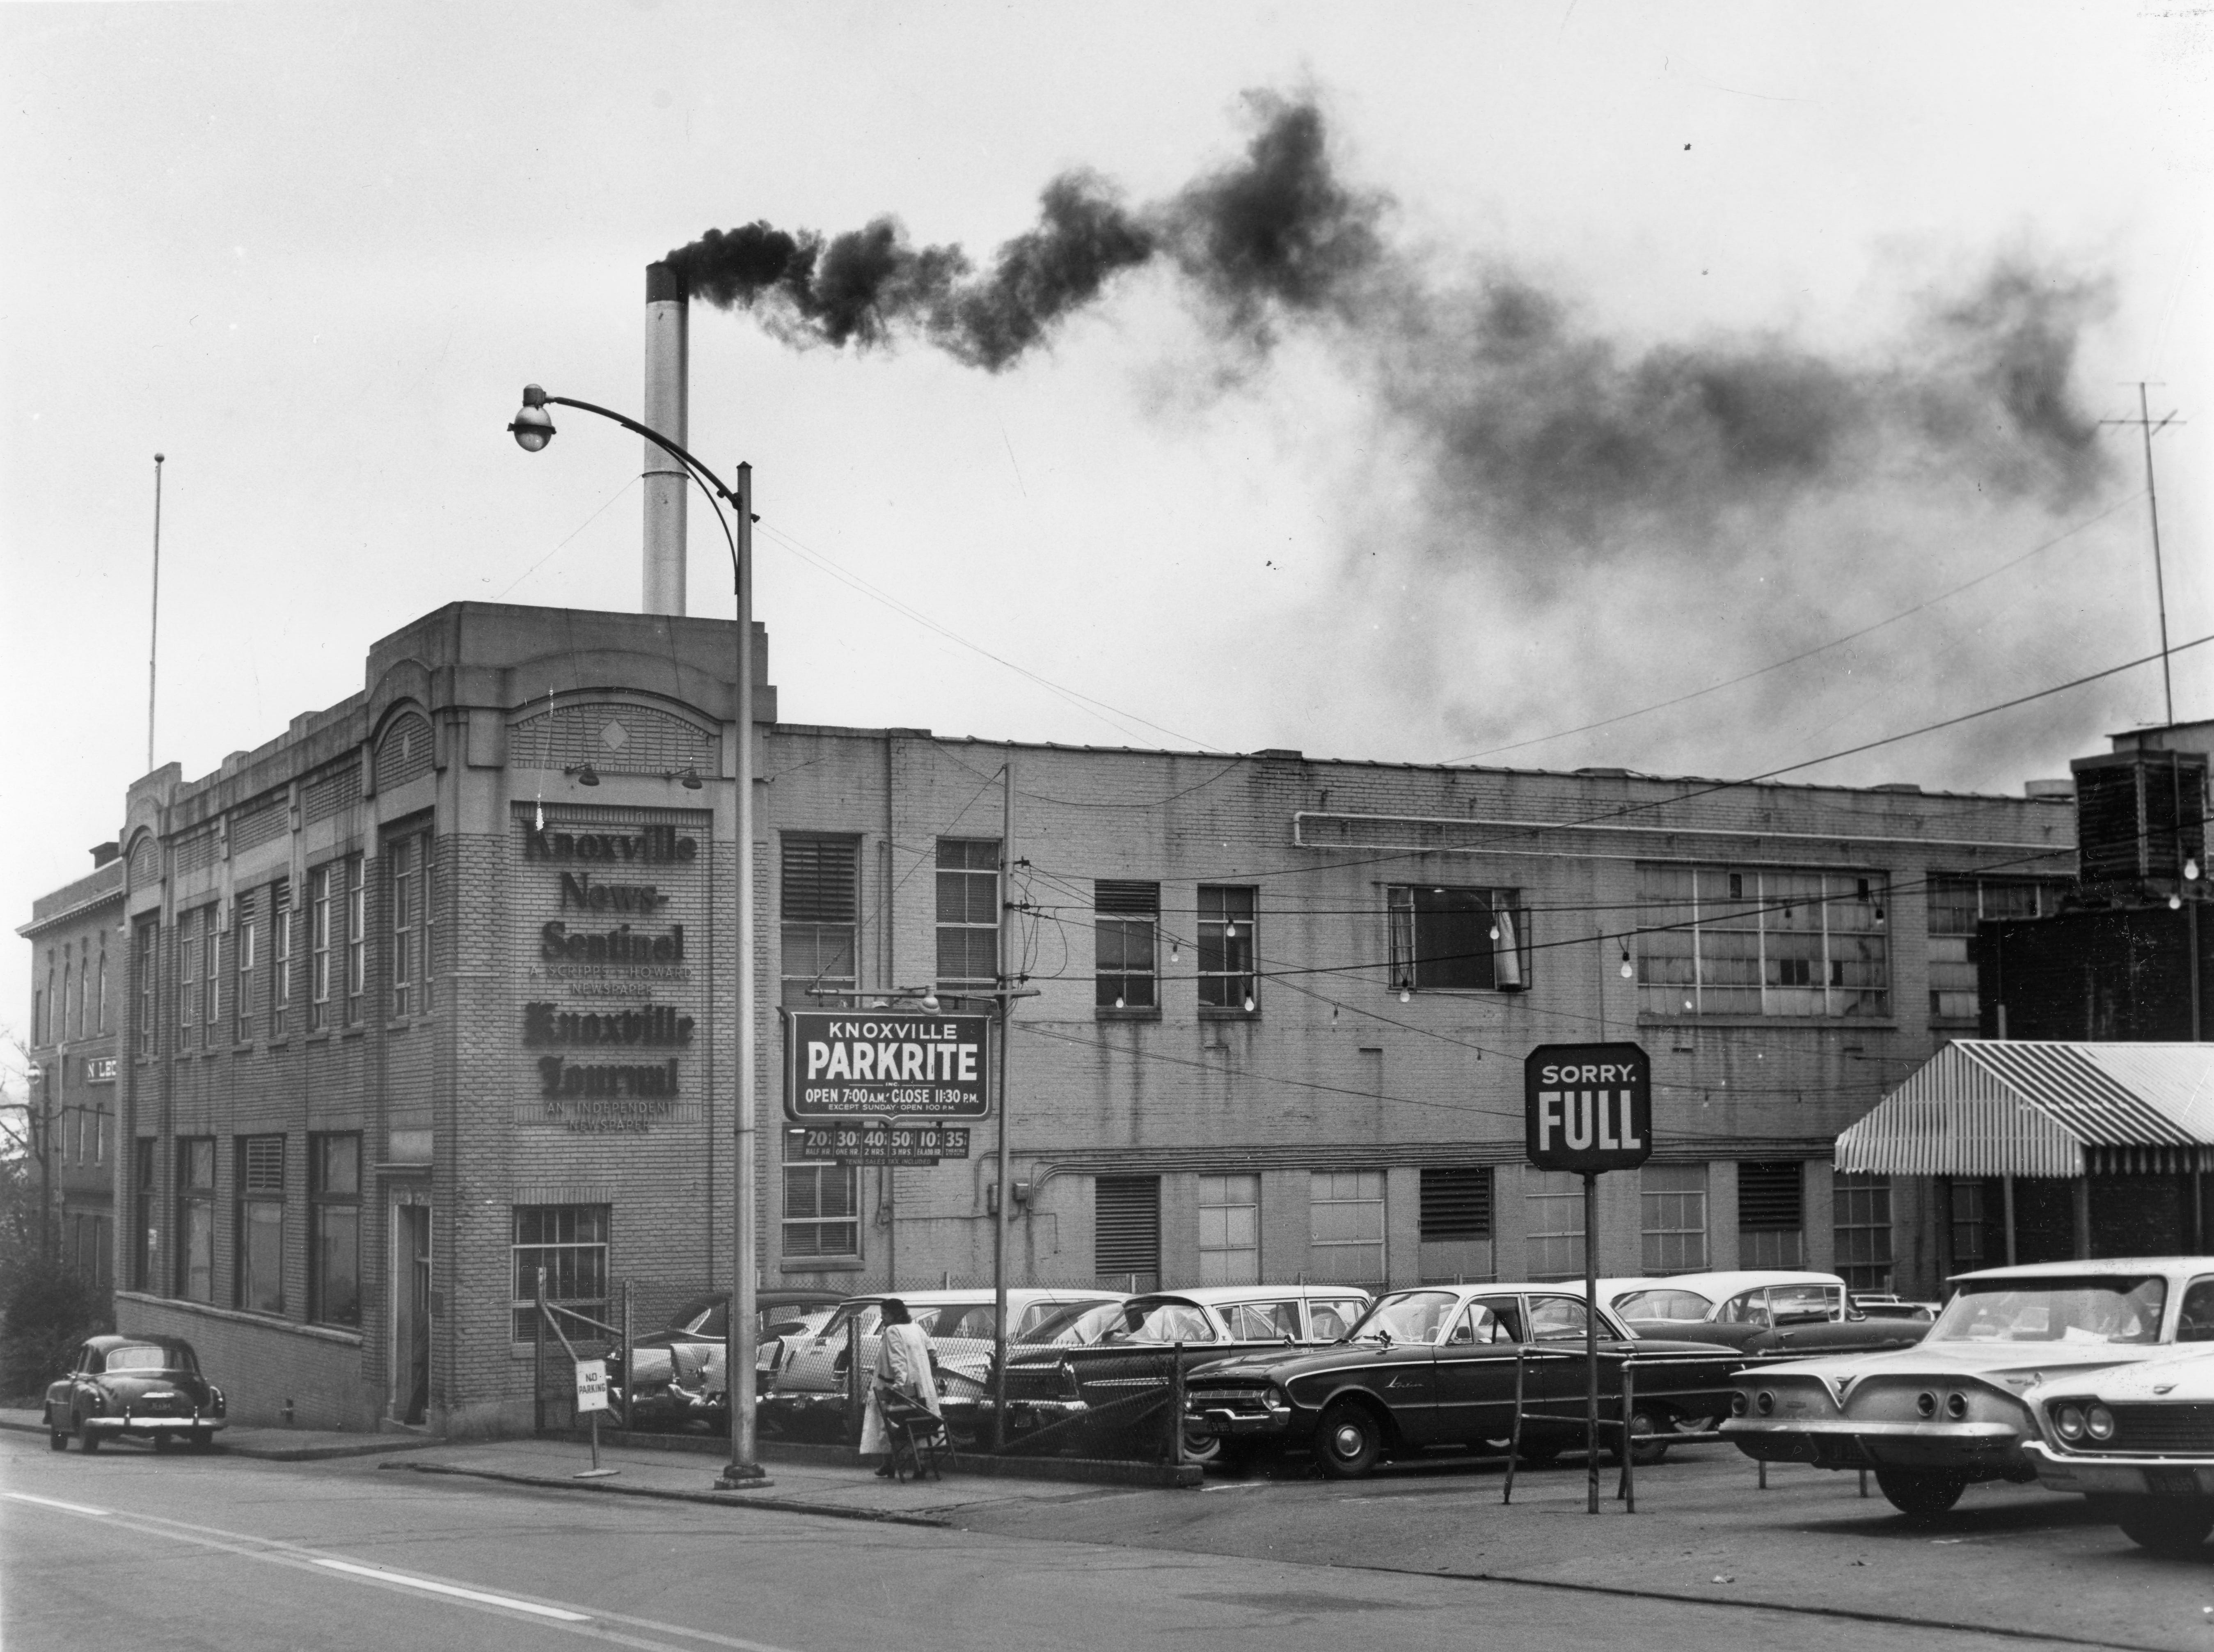 The Knoxville News Sentinel Building as seen in 1961.